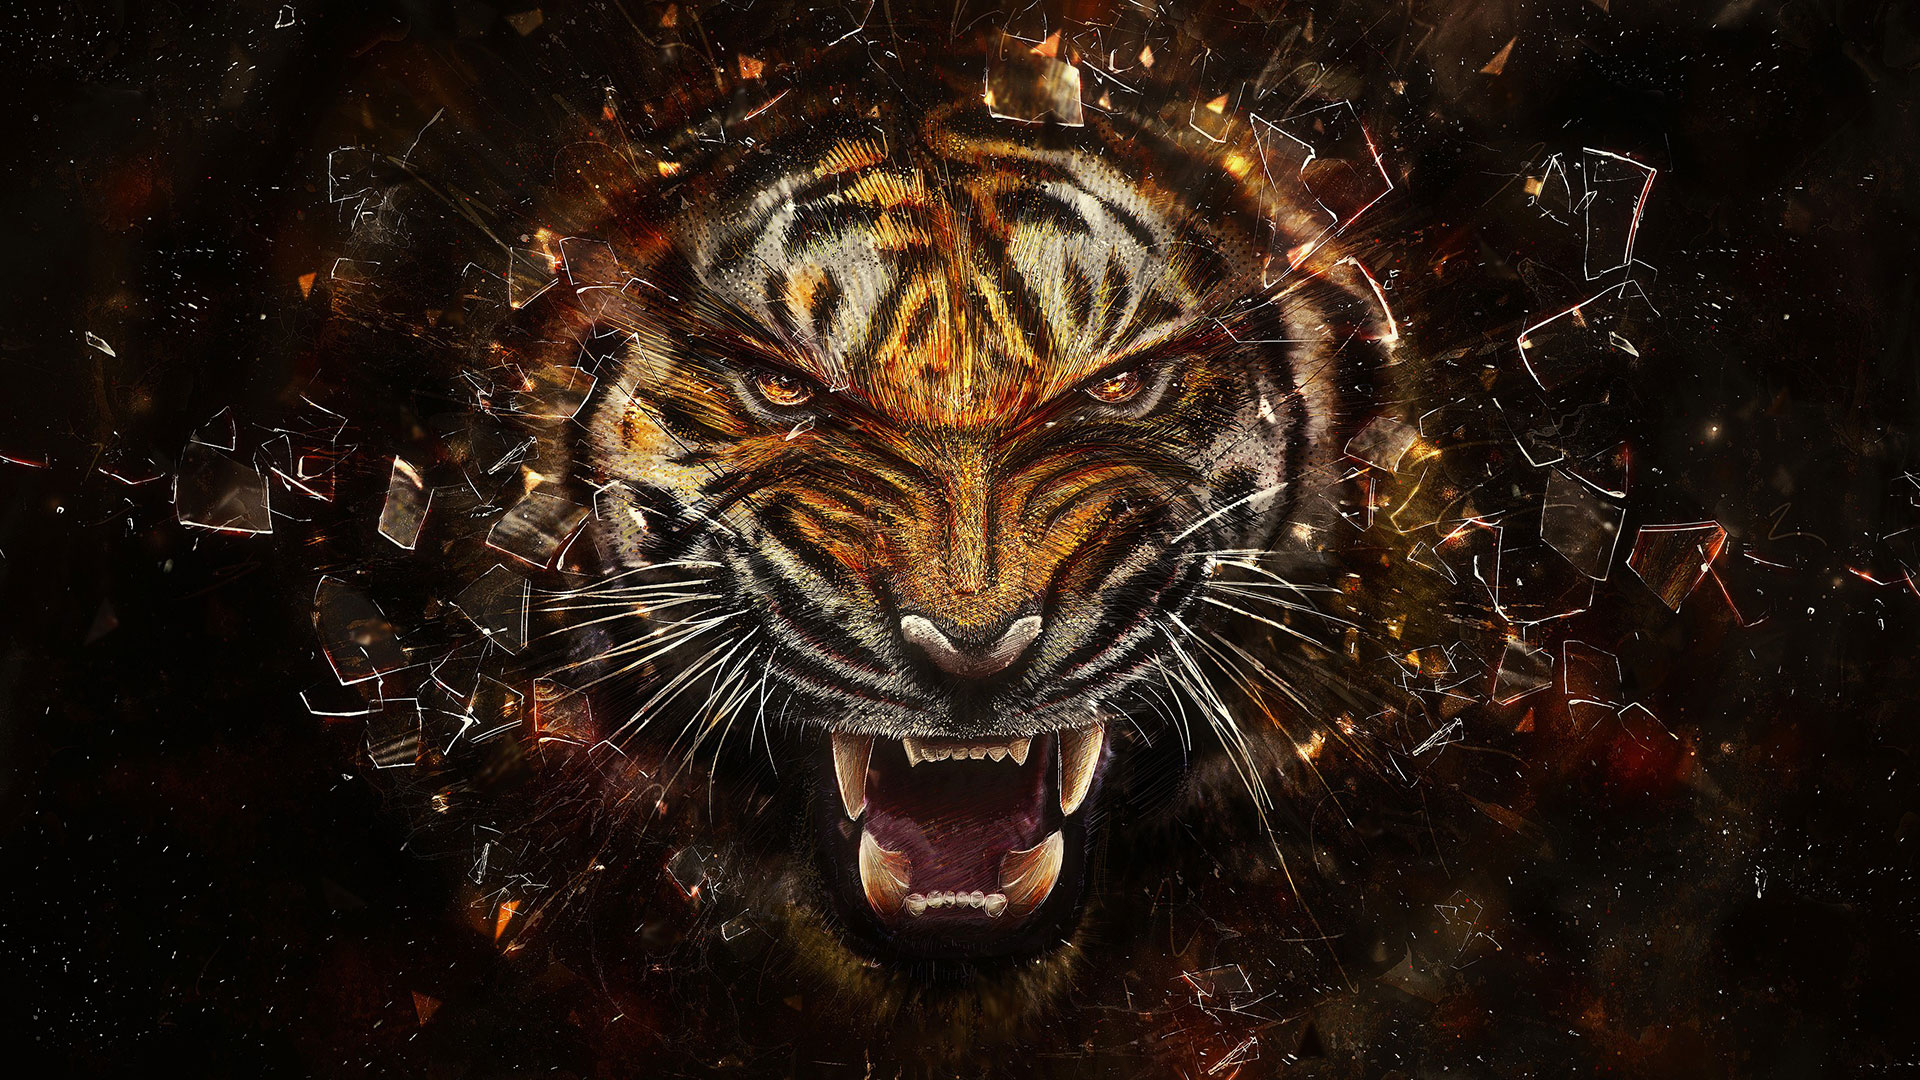 Eye of the Tiger HD Wallpaper by HD Wallpapers Daily